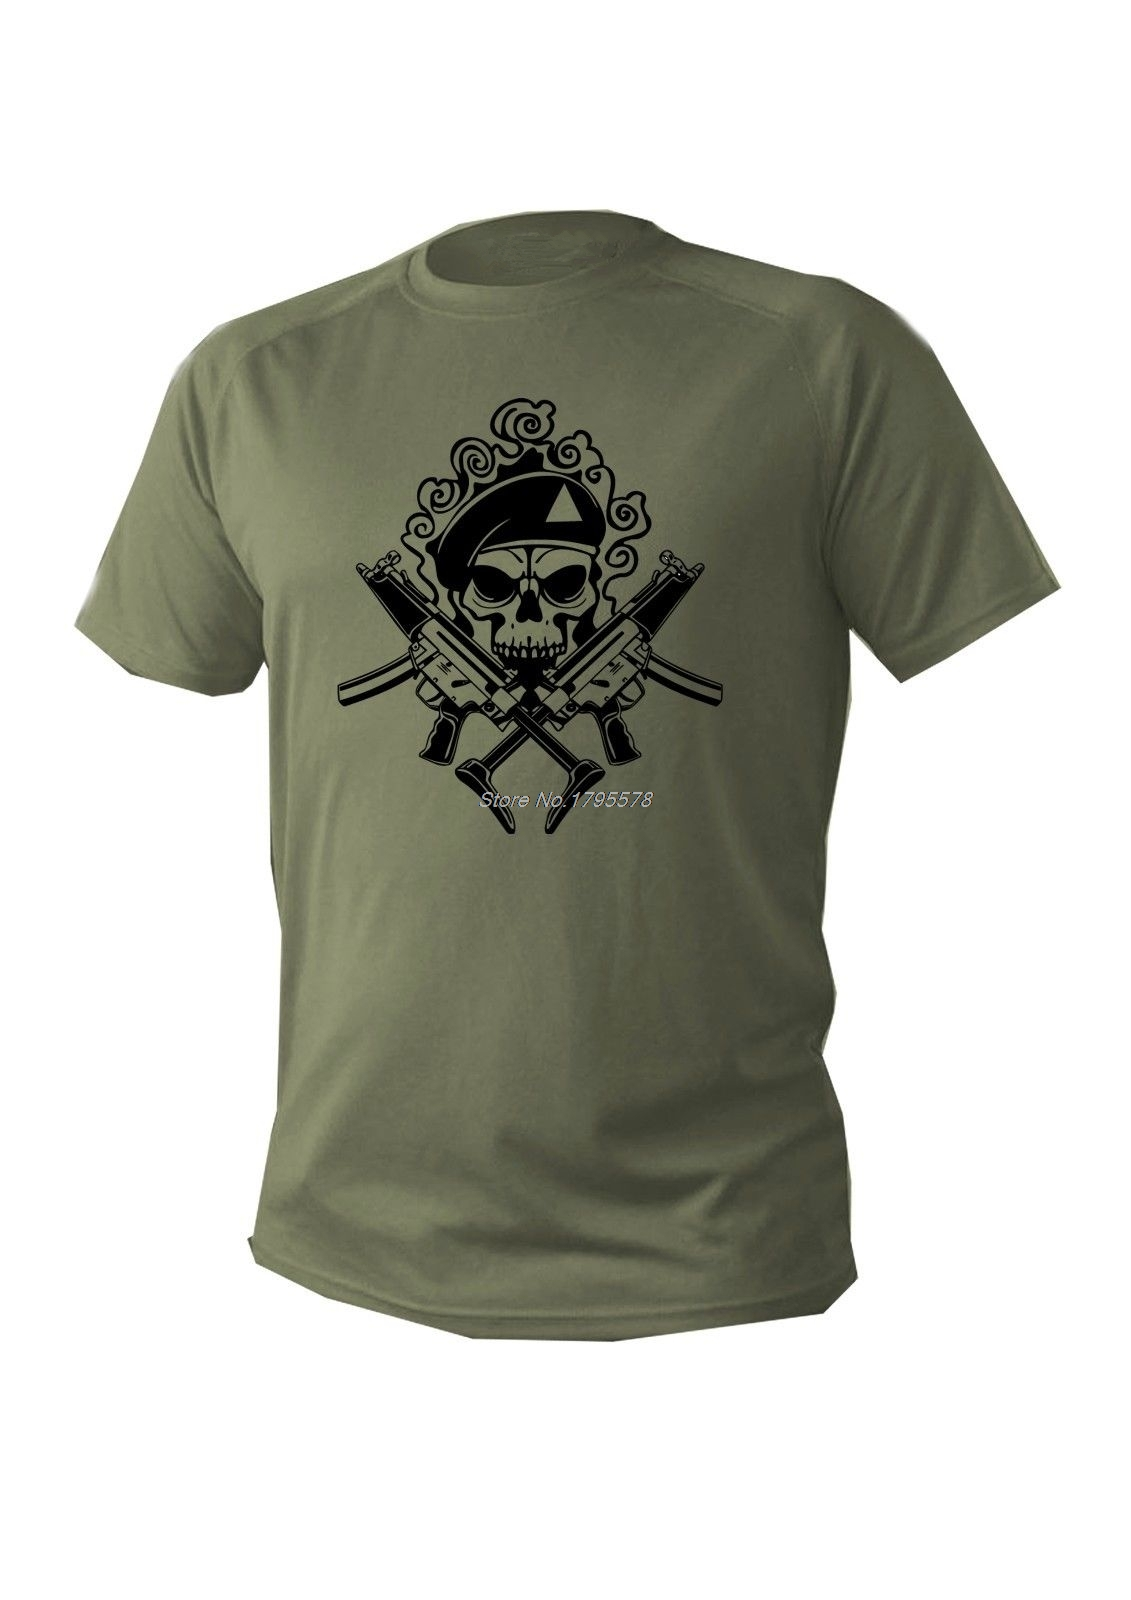 0c214faaccb2 Fashion Cool Men Short Sleeve Cotton T-shirt Green Olive Military Design  Army Skull T